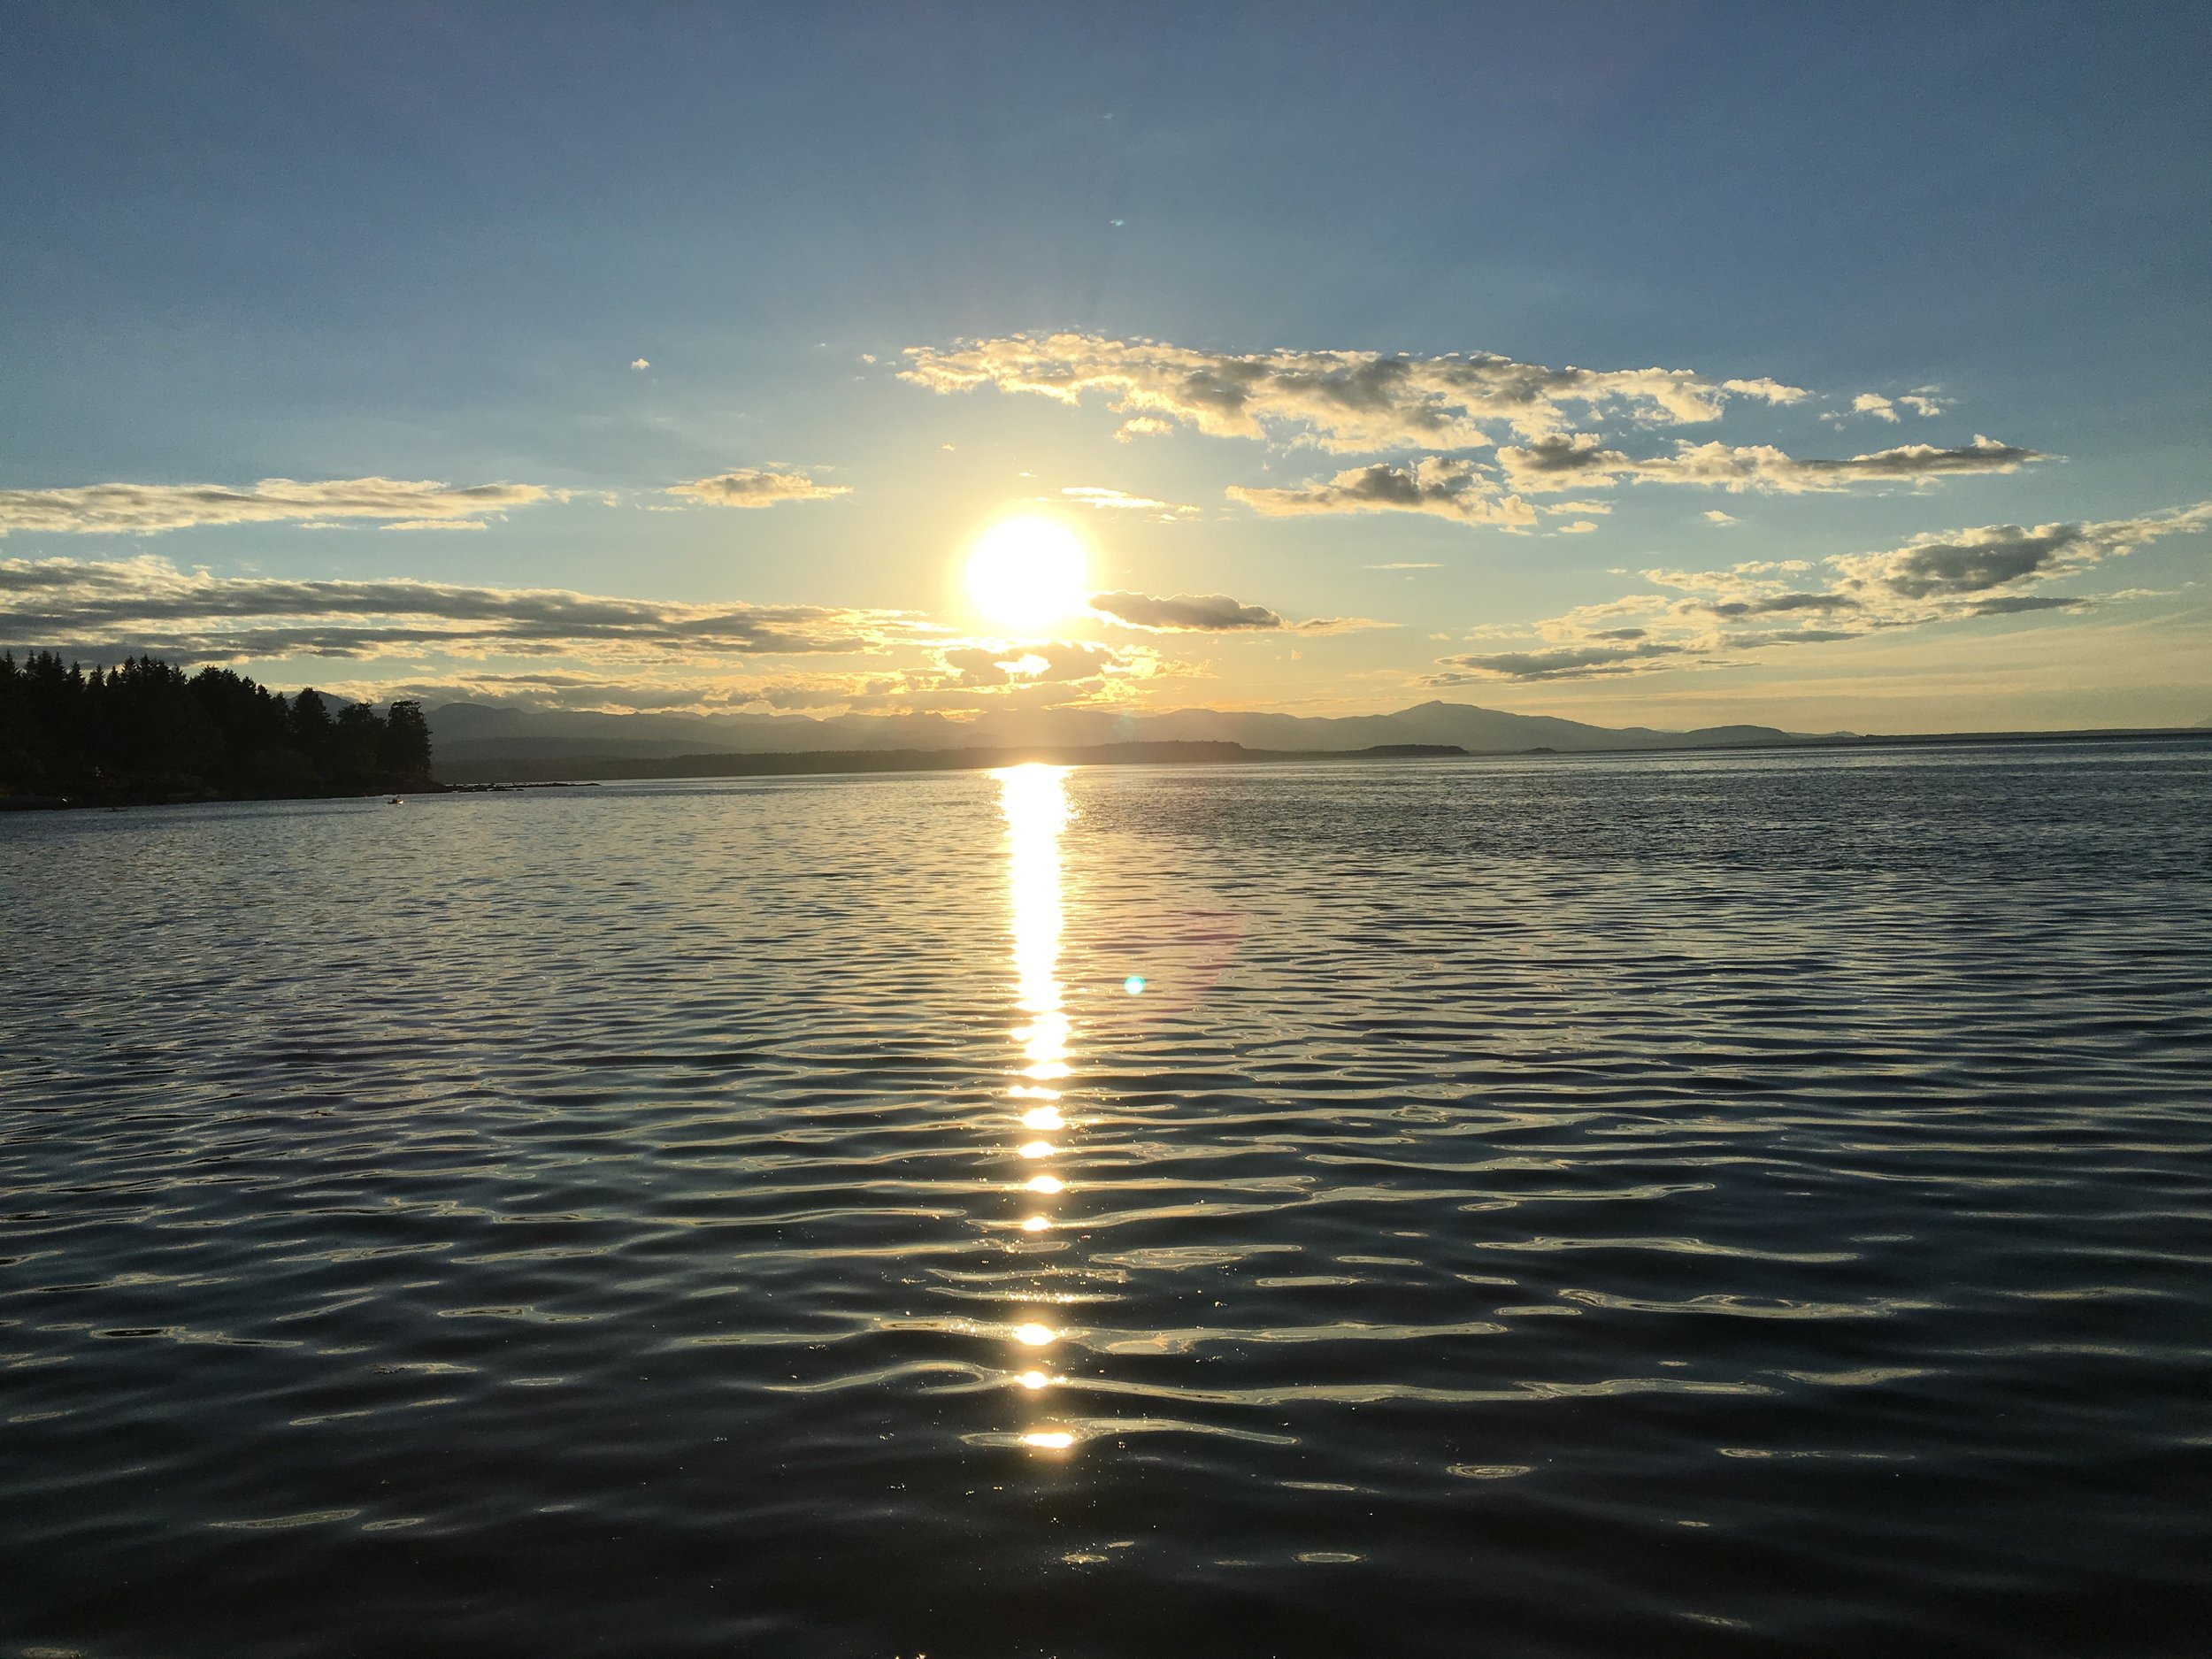 Grassy Point - Amazing sunsets to guzzle with the eyes